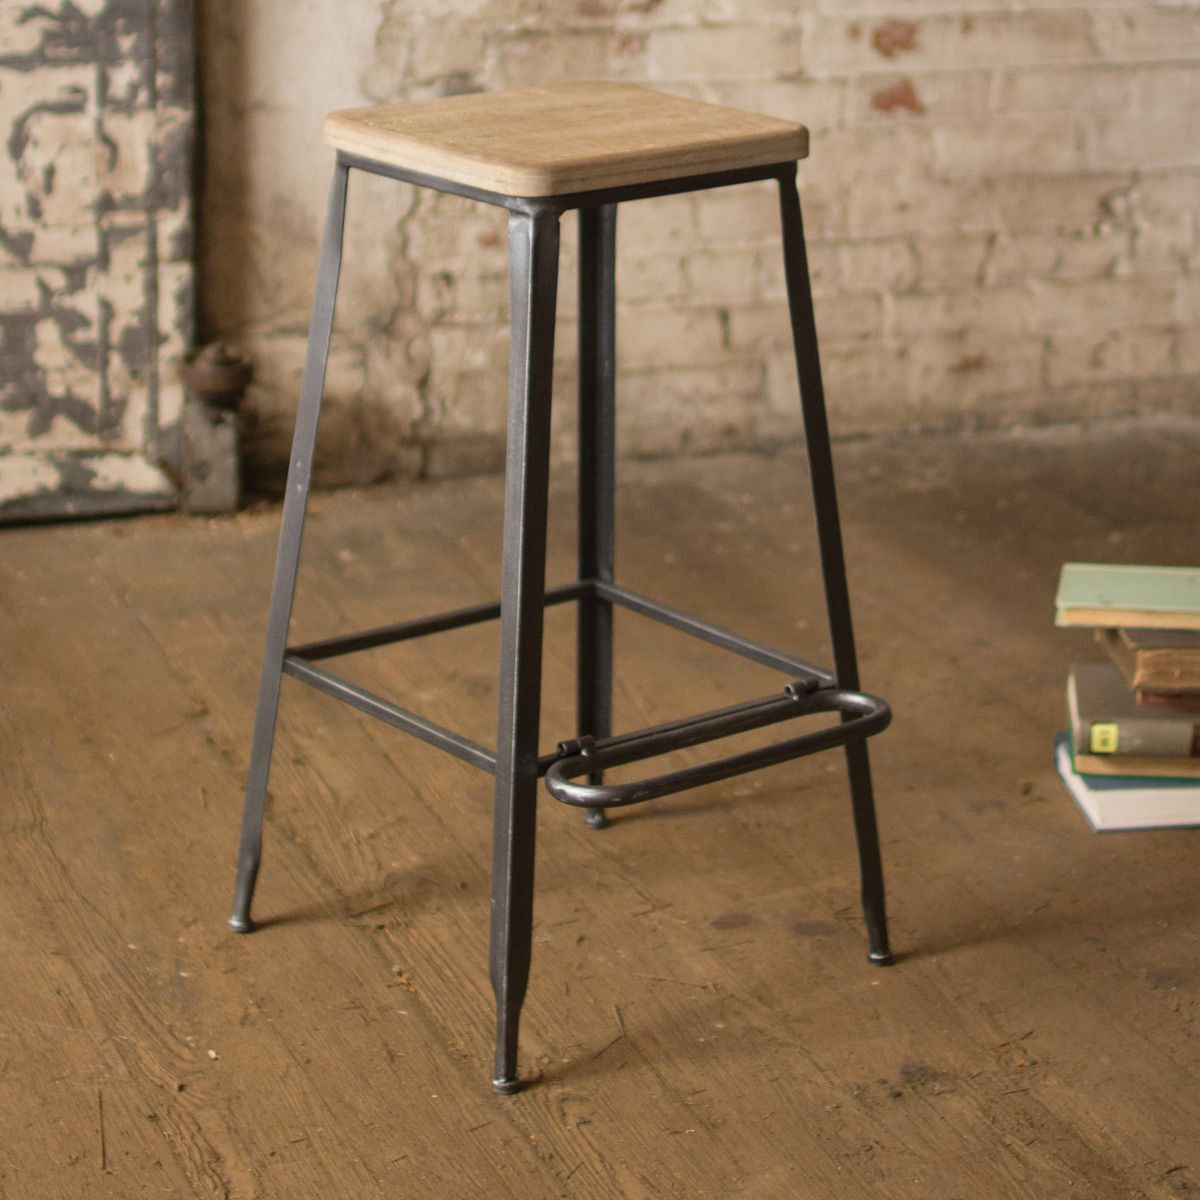 Wondrous Square Wood Top Bar Stool Gmtry Best Dining Table And Chair Ideas Images Gmtryco